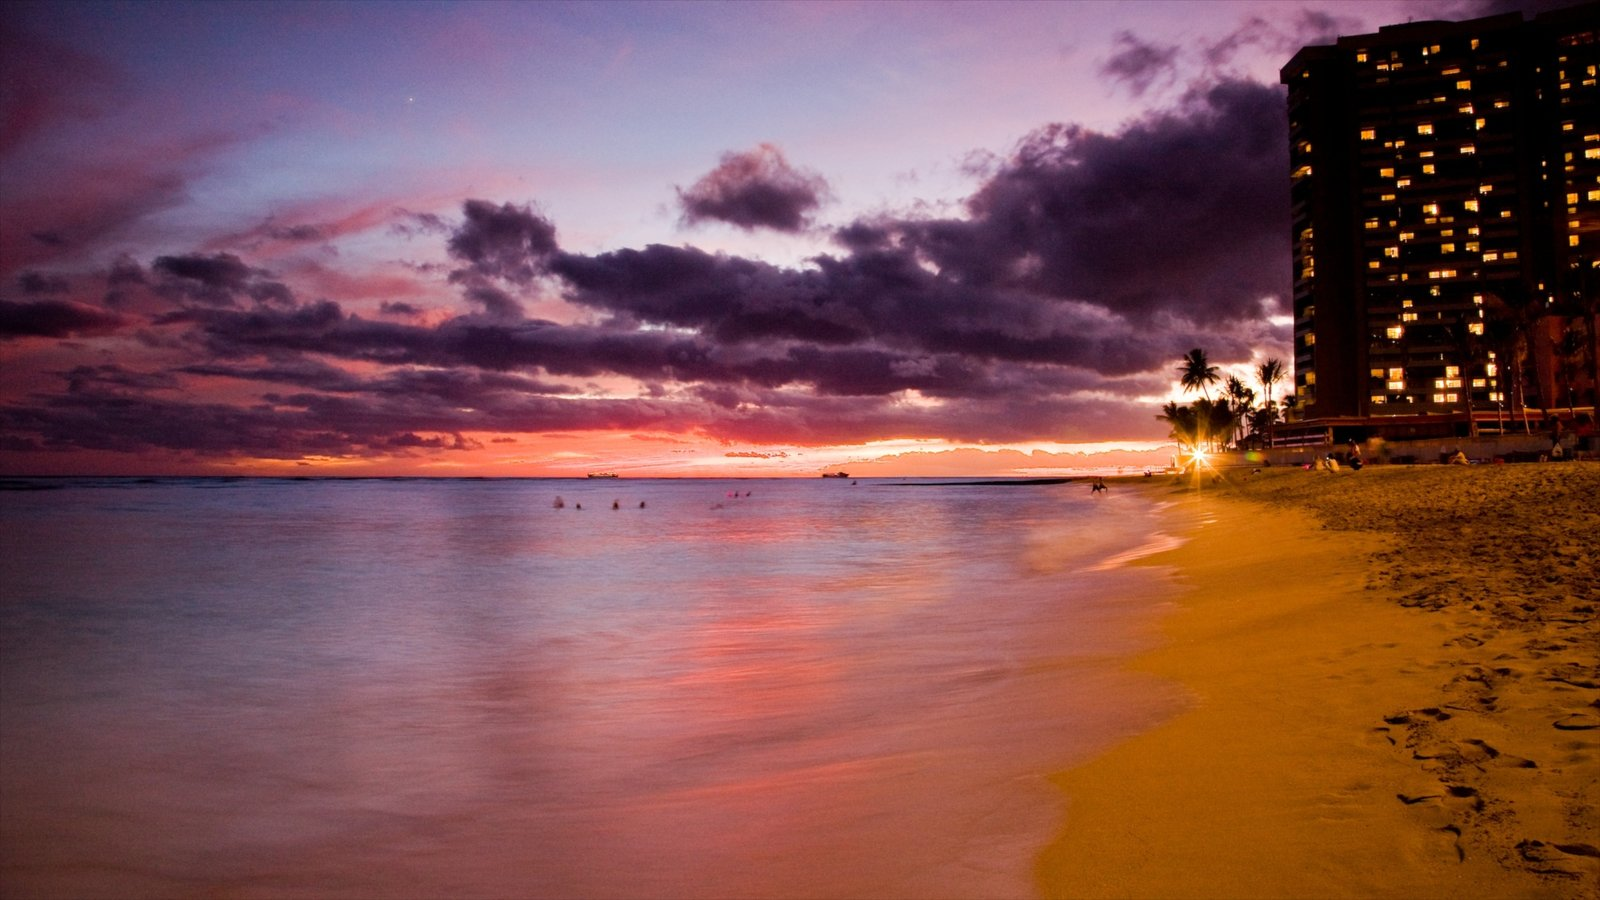 Waikiki showing tropical scenes, a beach and a sunset